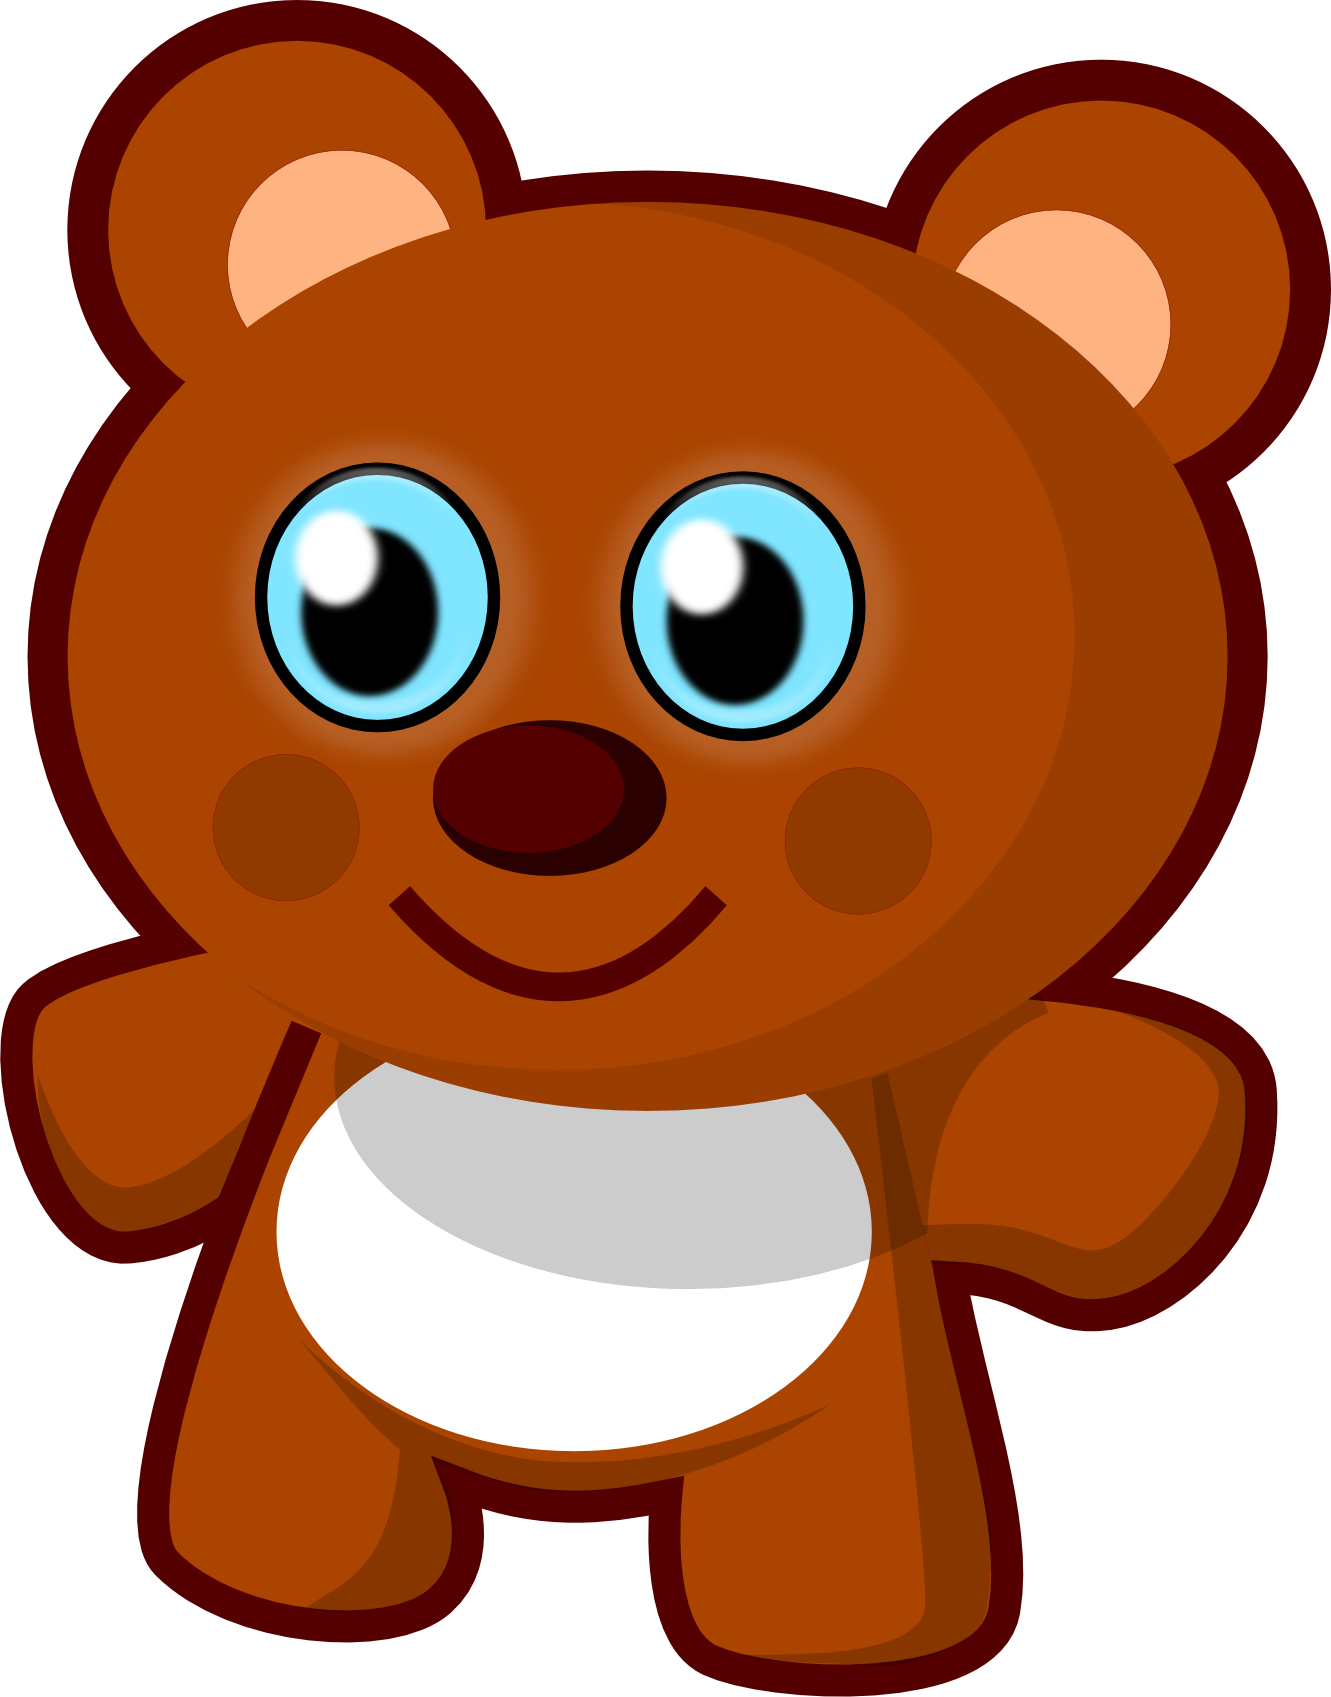 Clipart food charity. Clip art cute bear